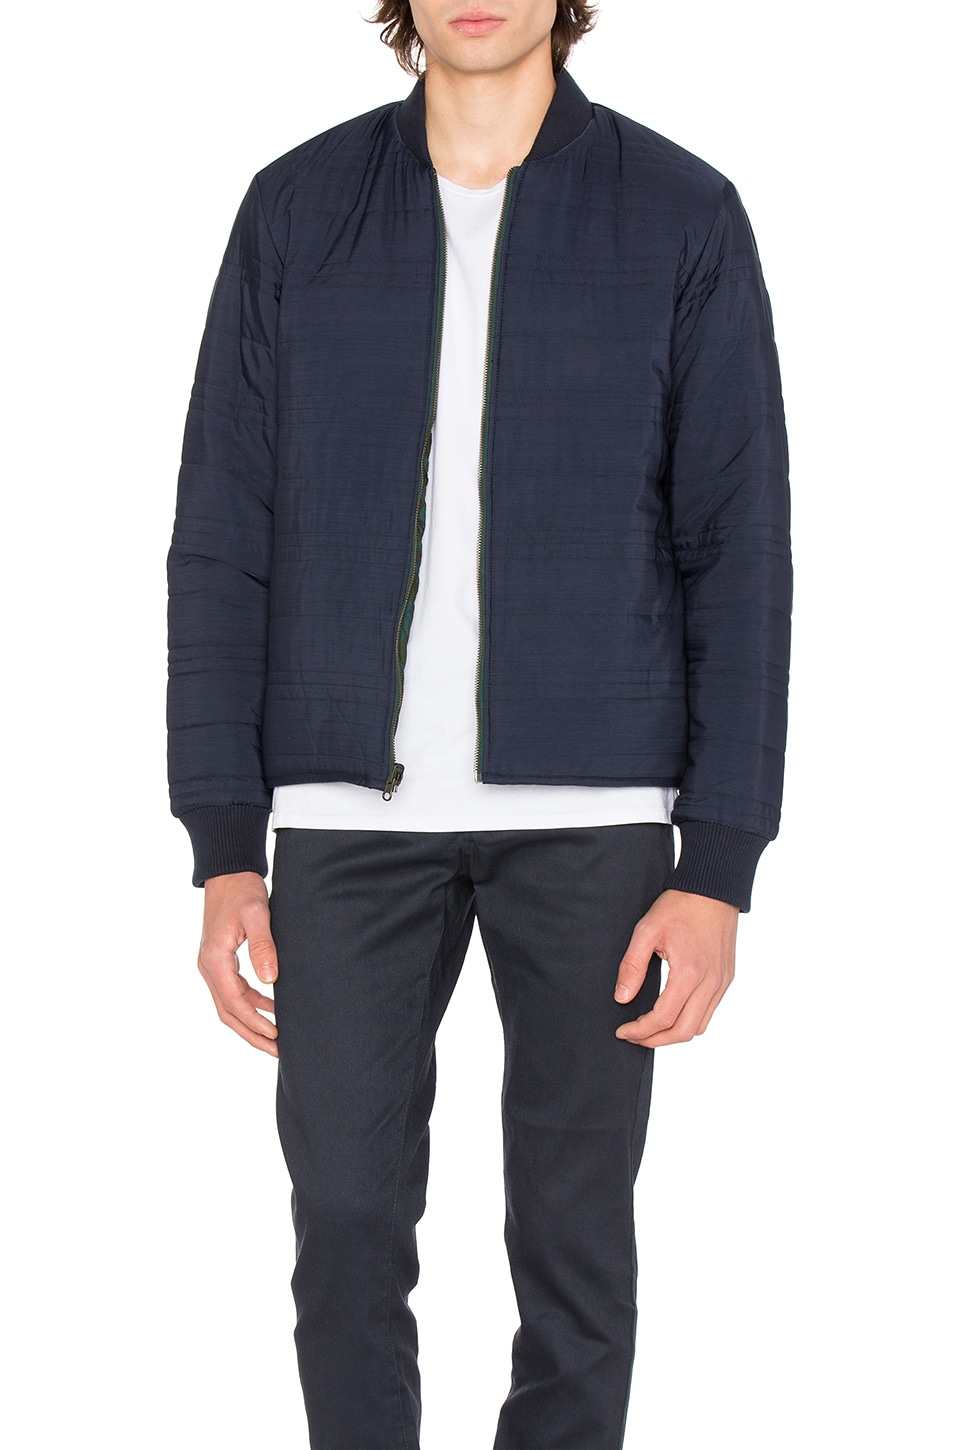 Evolution Bomber by OUTERKNOWN